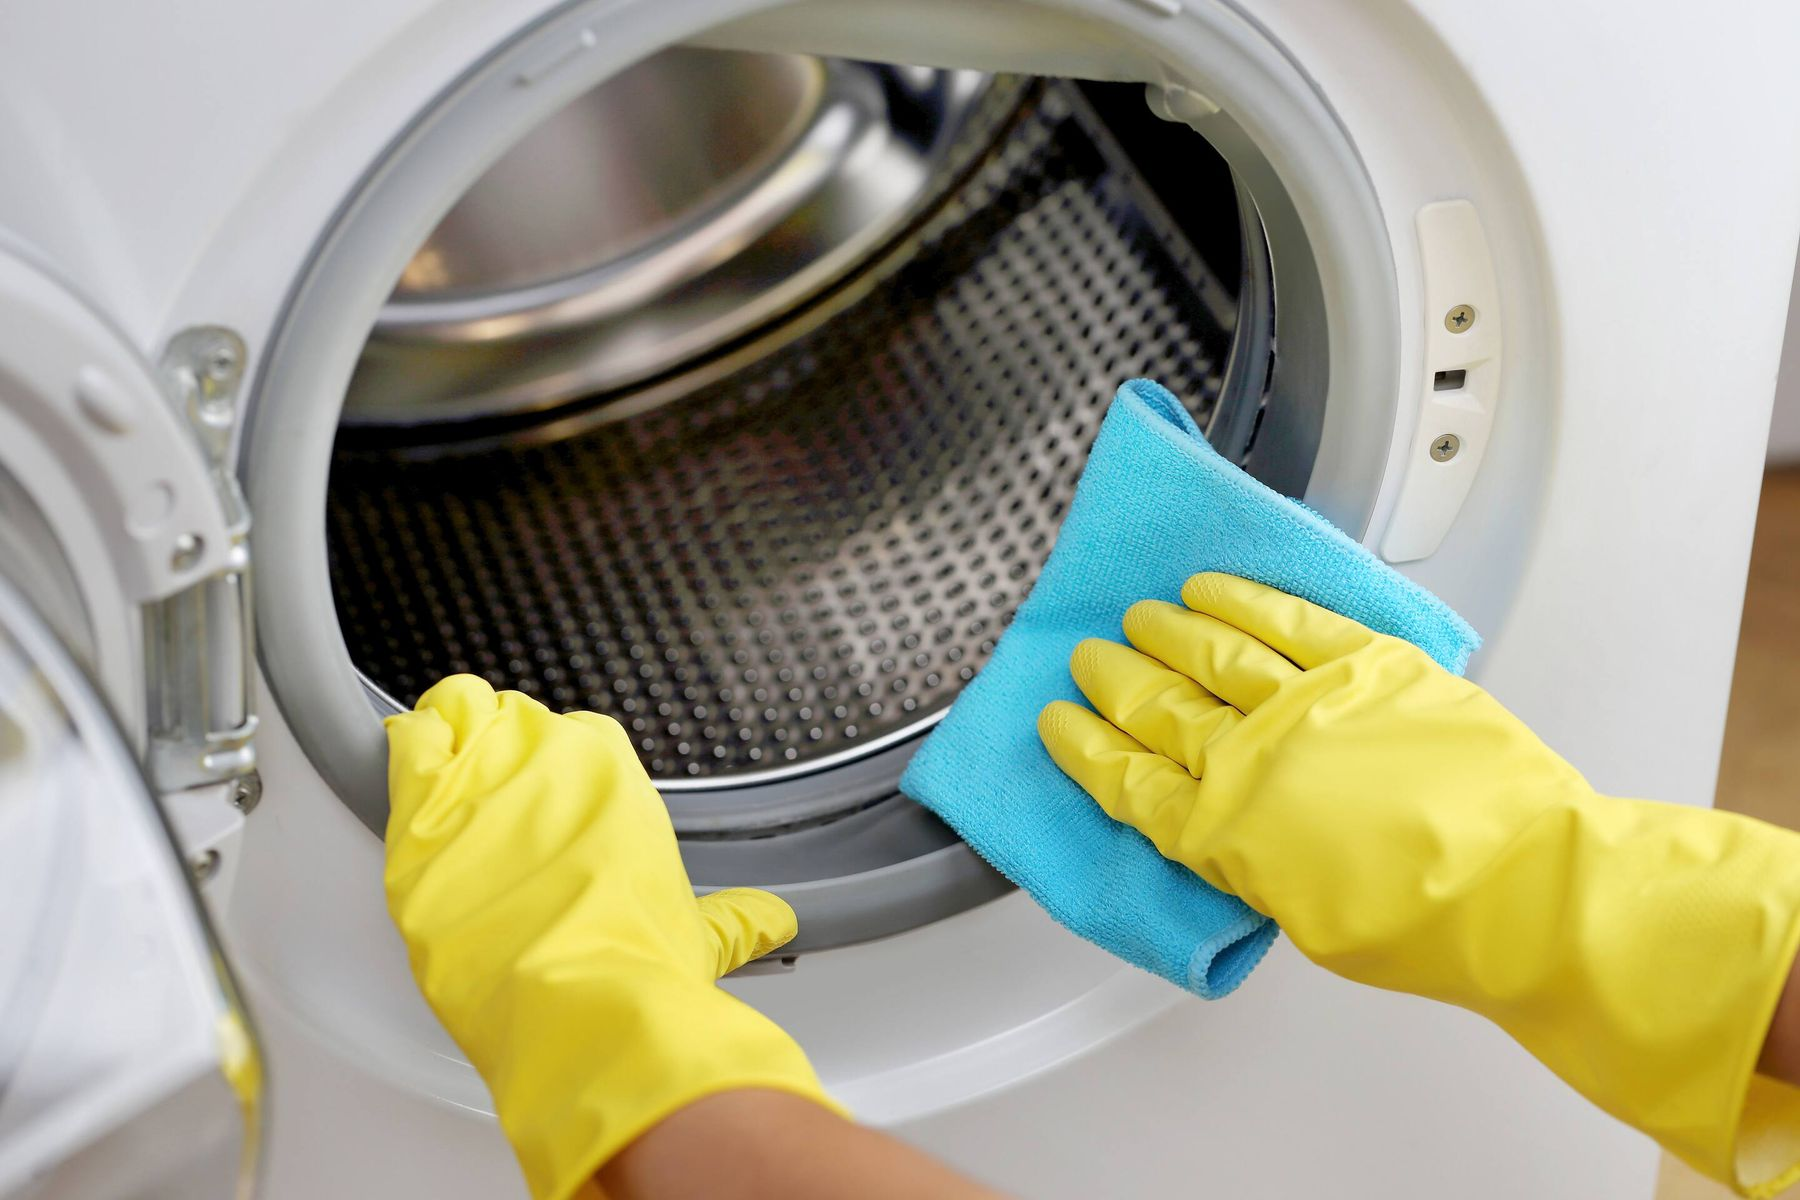 Hand cleaning rubber in washing machine drum